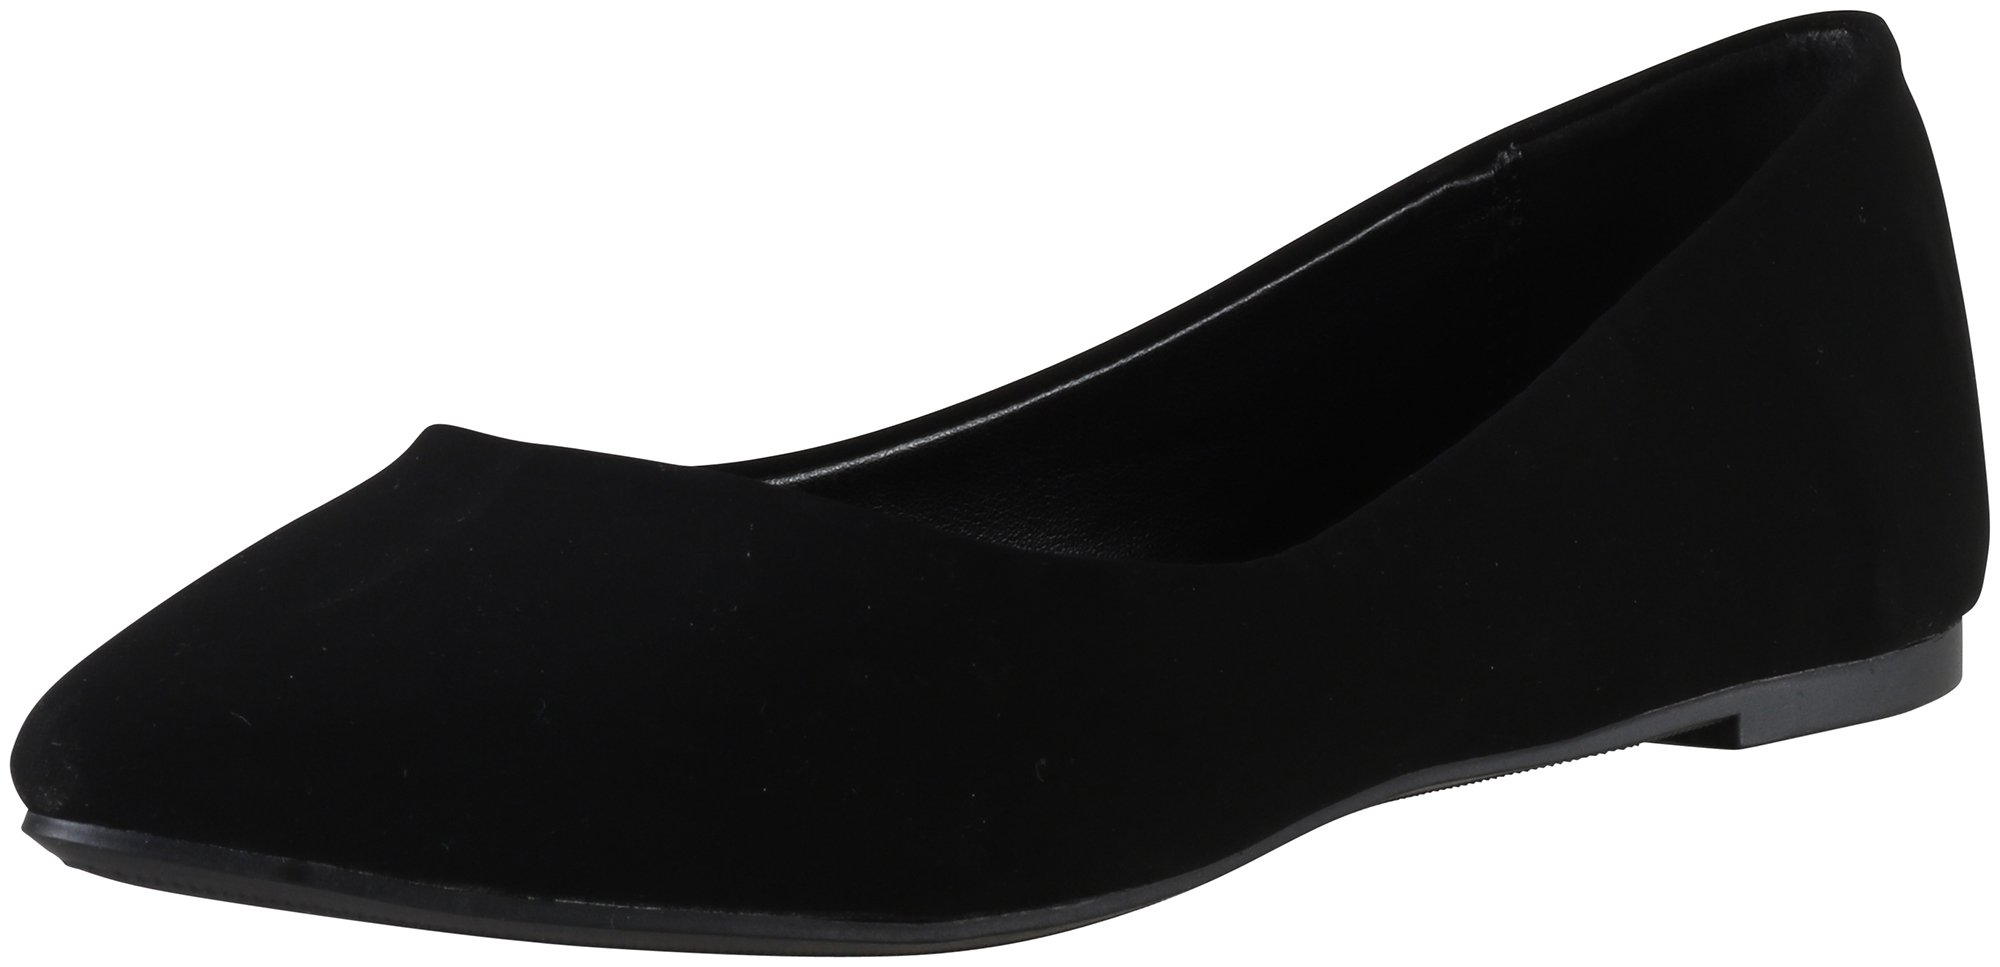 Soda Shoes Women's Redbud Pointy Toe Flat Memory Foam, Black Nubuck, 6.5 by Soda